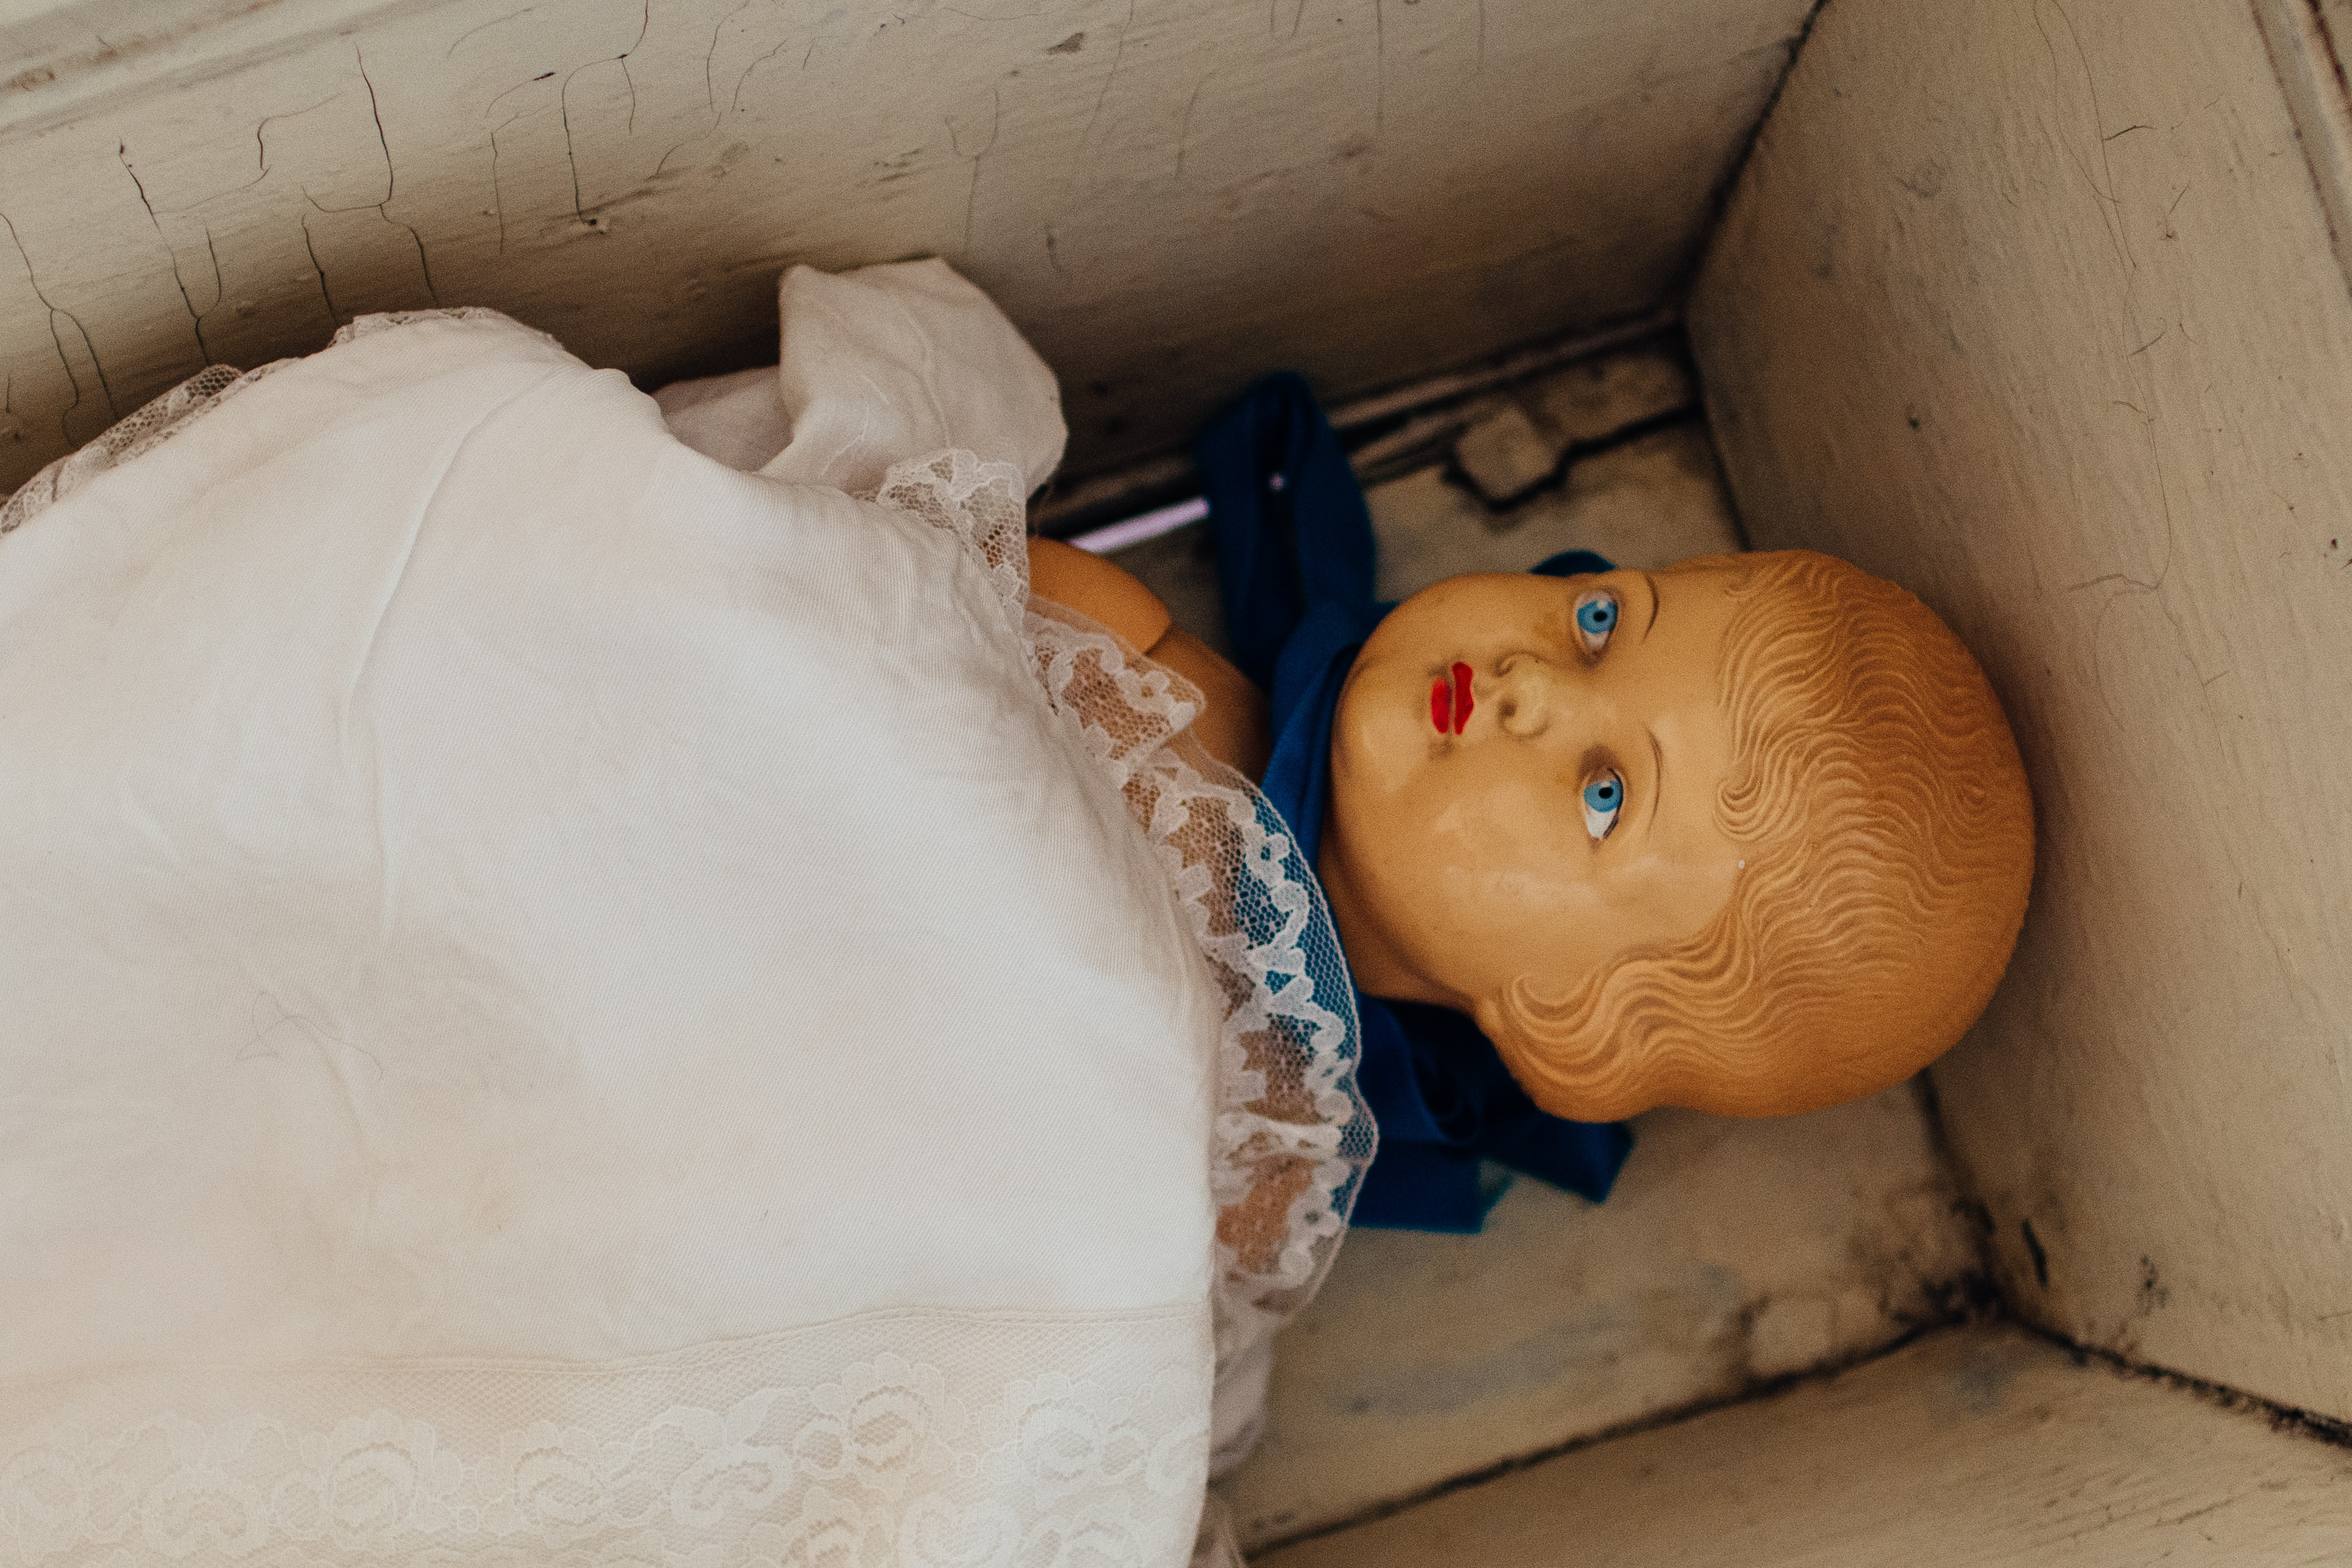 A baby doll in a cradle with a white lace over it